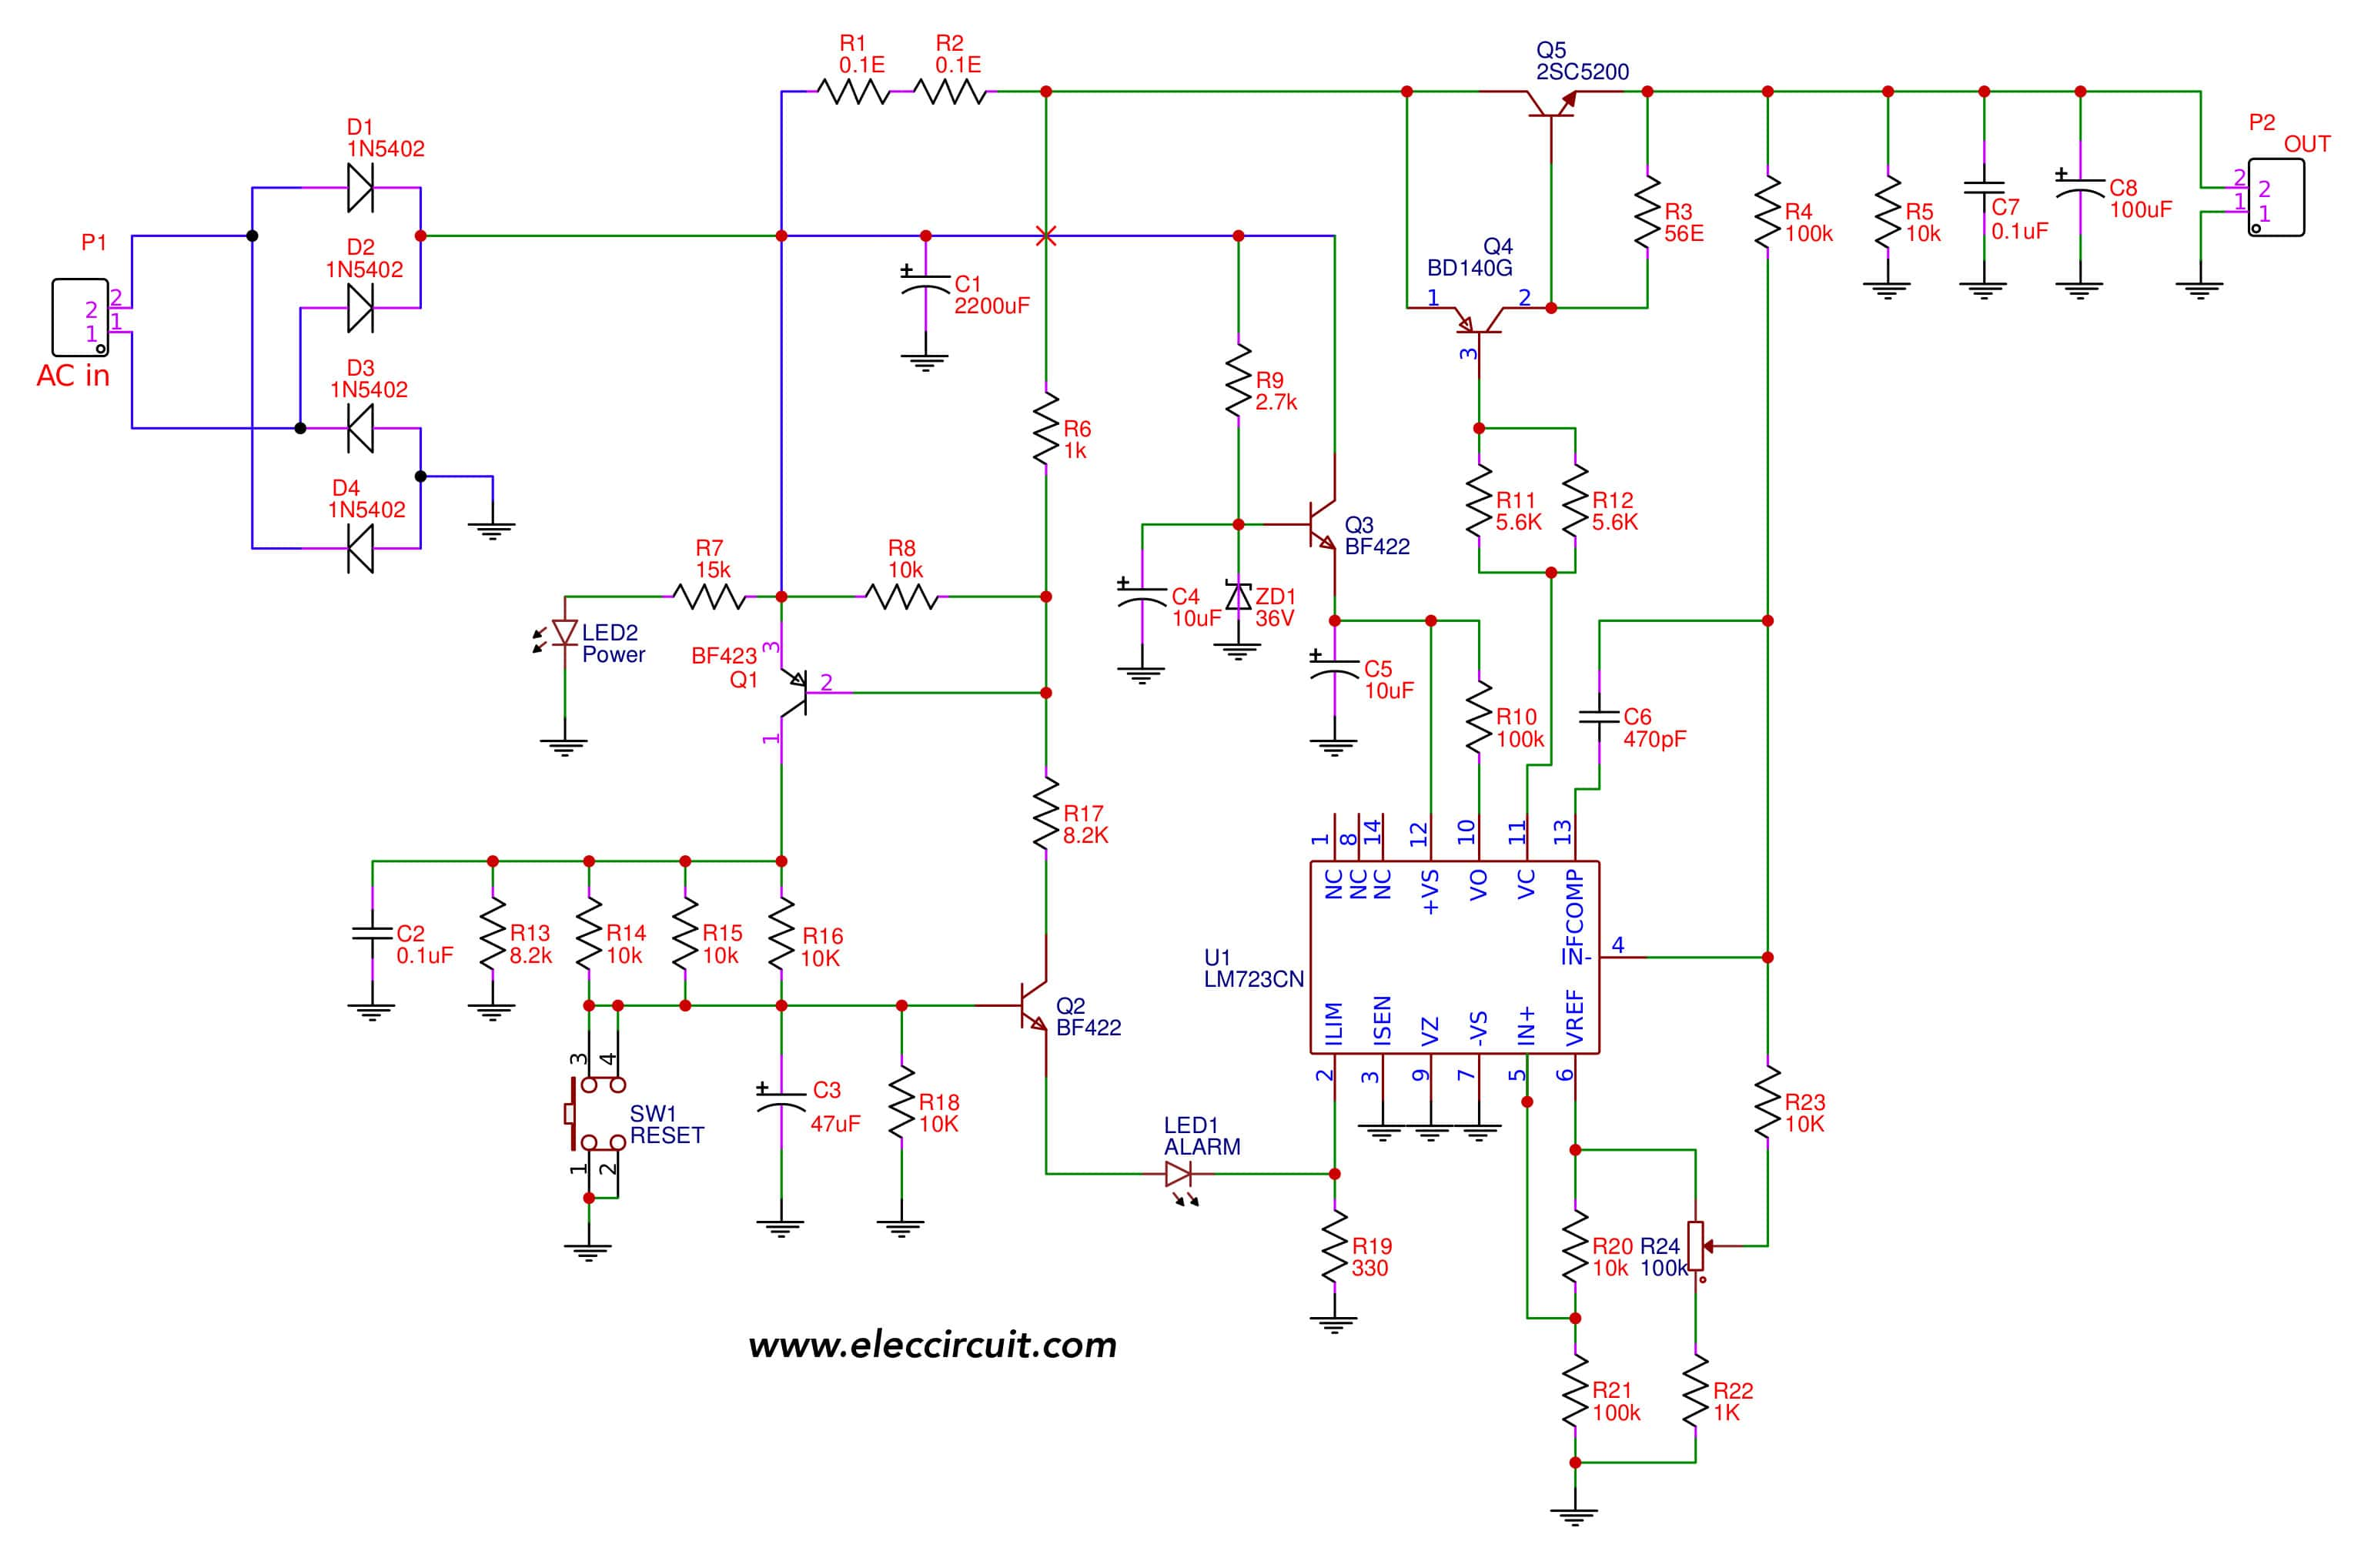 Electric Wiring Diagram For Bad Boy Mower, Electric, Get